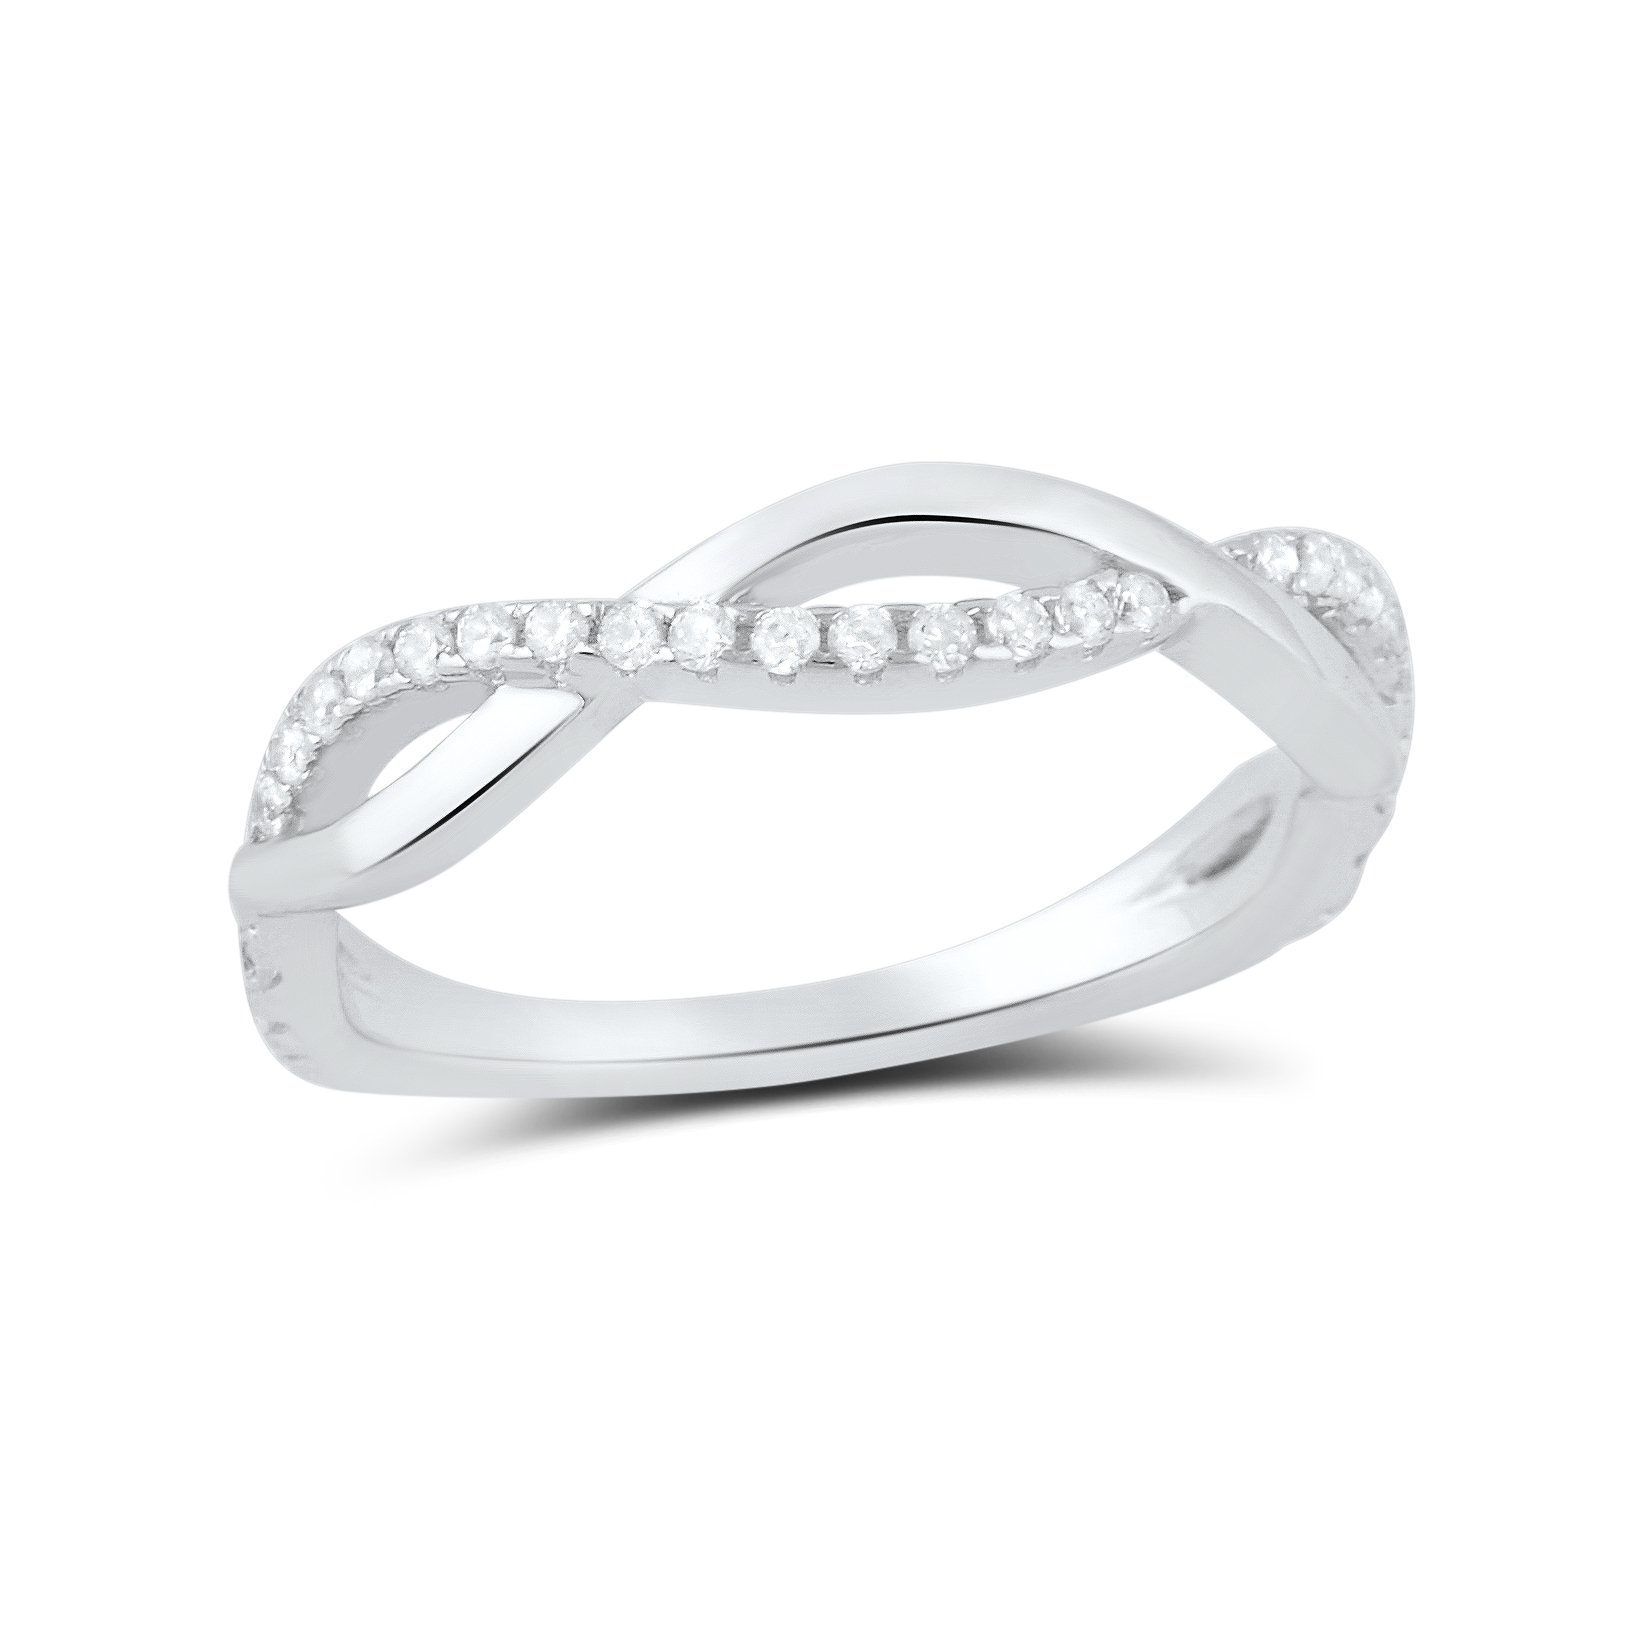 Sterling Silver Cz Stackable Twisted infinity Ring - Size 6